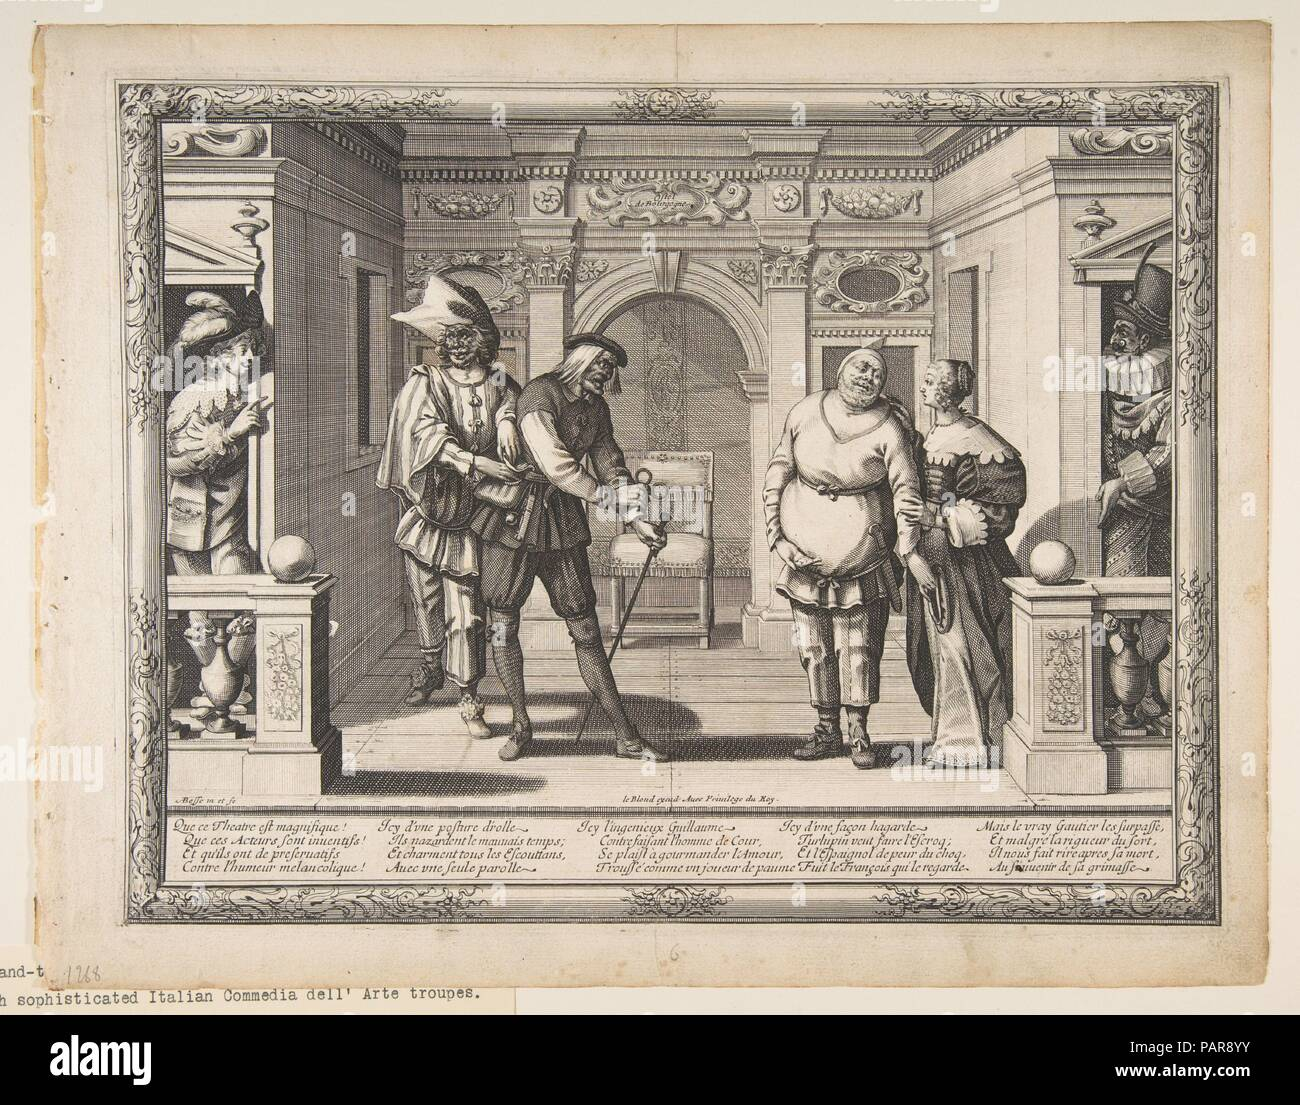 Actors at the Hotel de Bourgogne. Artist: Abraham Bosse (French, Tours 1602/1604-1676 Paris). Dimensions: Sheet: 11 9/16 × 14 3/4 in. (29.4 × 37.4 cm)  Plate: 10 1/4 x 13 1/4 in. (26 x 33.7 cm). Publisher: Jean I Leblond (French, ca. 1590-1666 Paris). Date: ca. 1633-34.  This print depicts six actors from a troupe of comedians led by Robert Guérin appear on stage at the theatre of the Hôtel de Bourgogne in Paris. The play depicted is unknown, but the characters can be identified as Turlupin (a roguish valet played by Henri Legrand), an old man (played by Gaultier-Garguille) and Gros Guillaume  - Stock Image